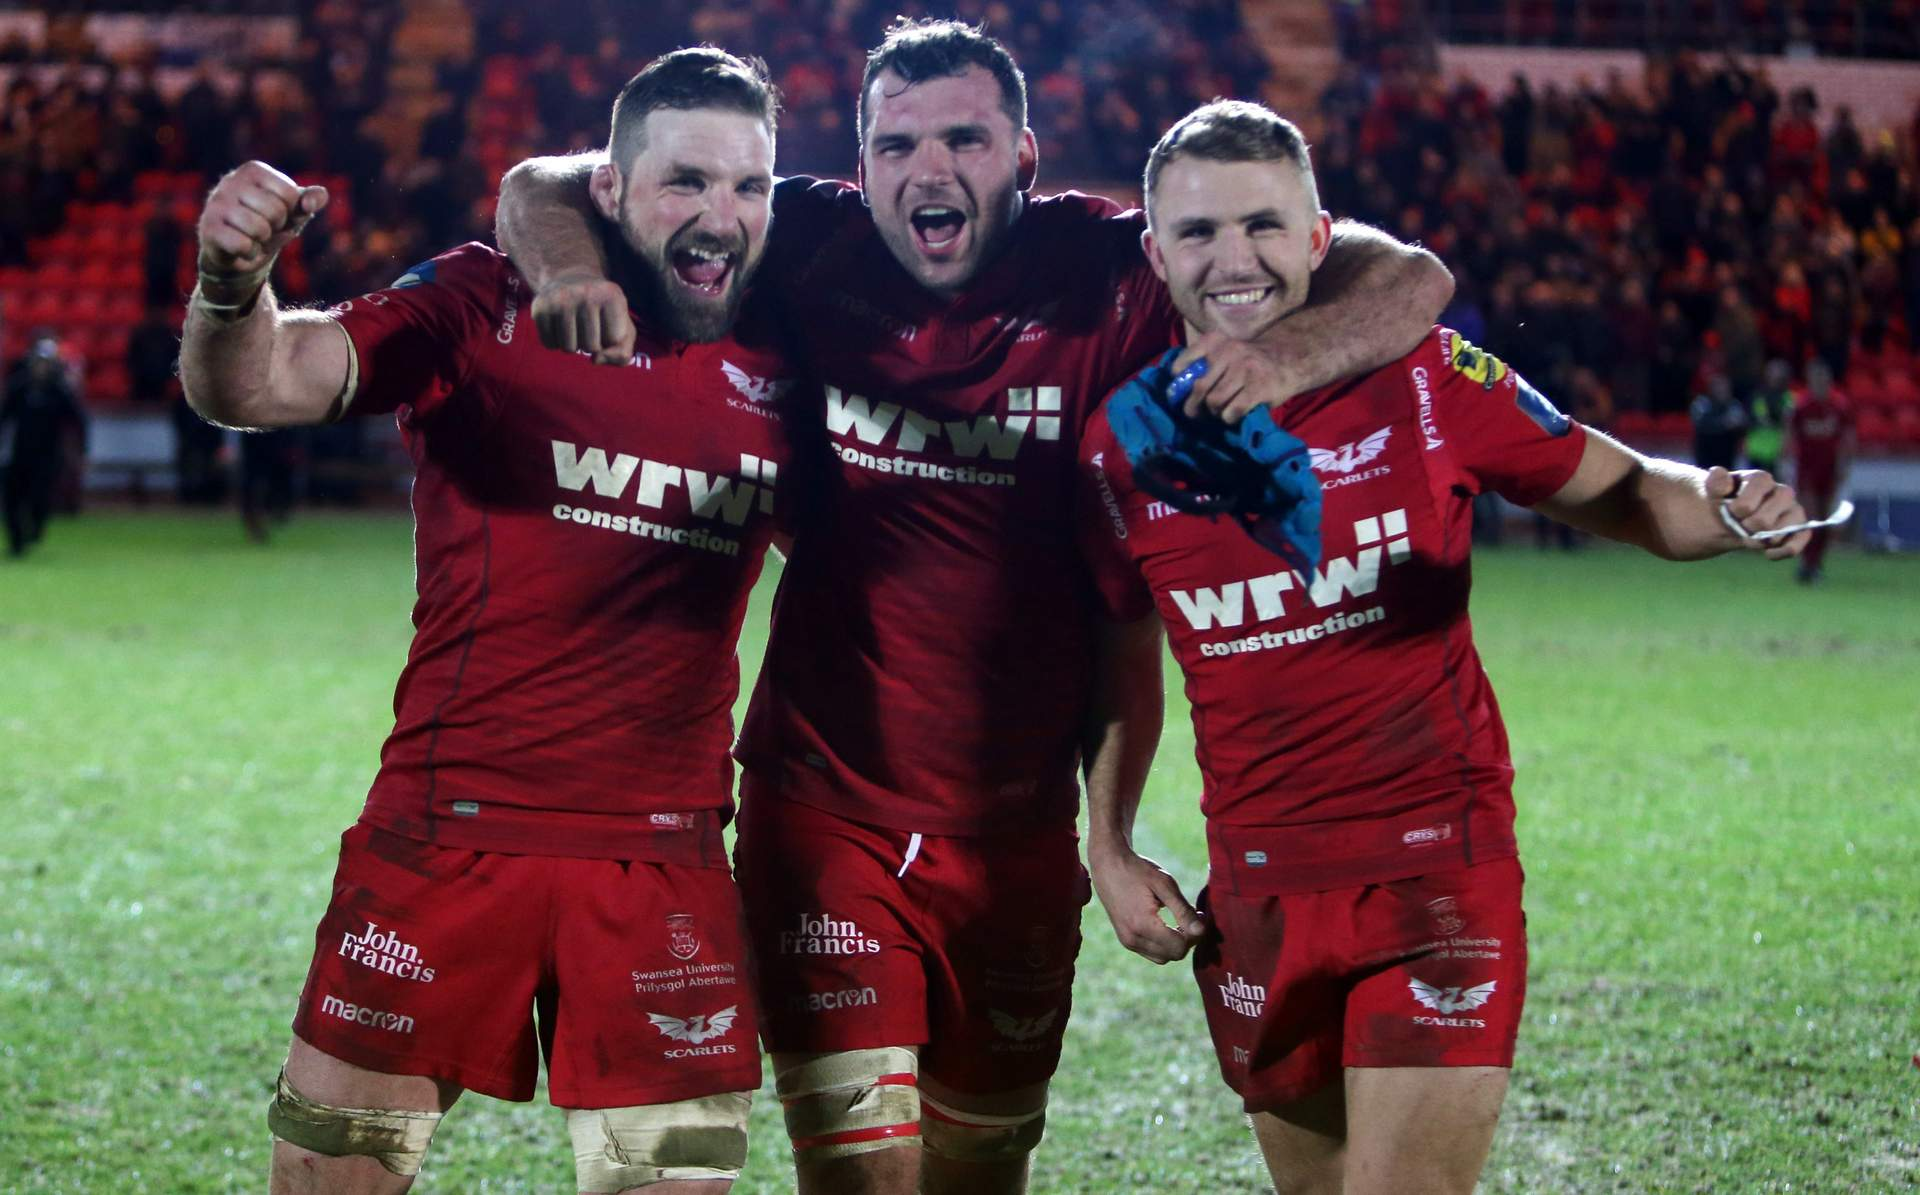 REPORT: Scarlets into Champions Cup quarters after famous win